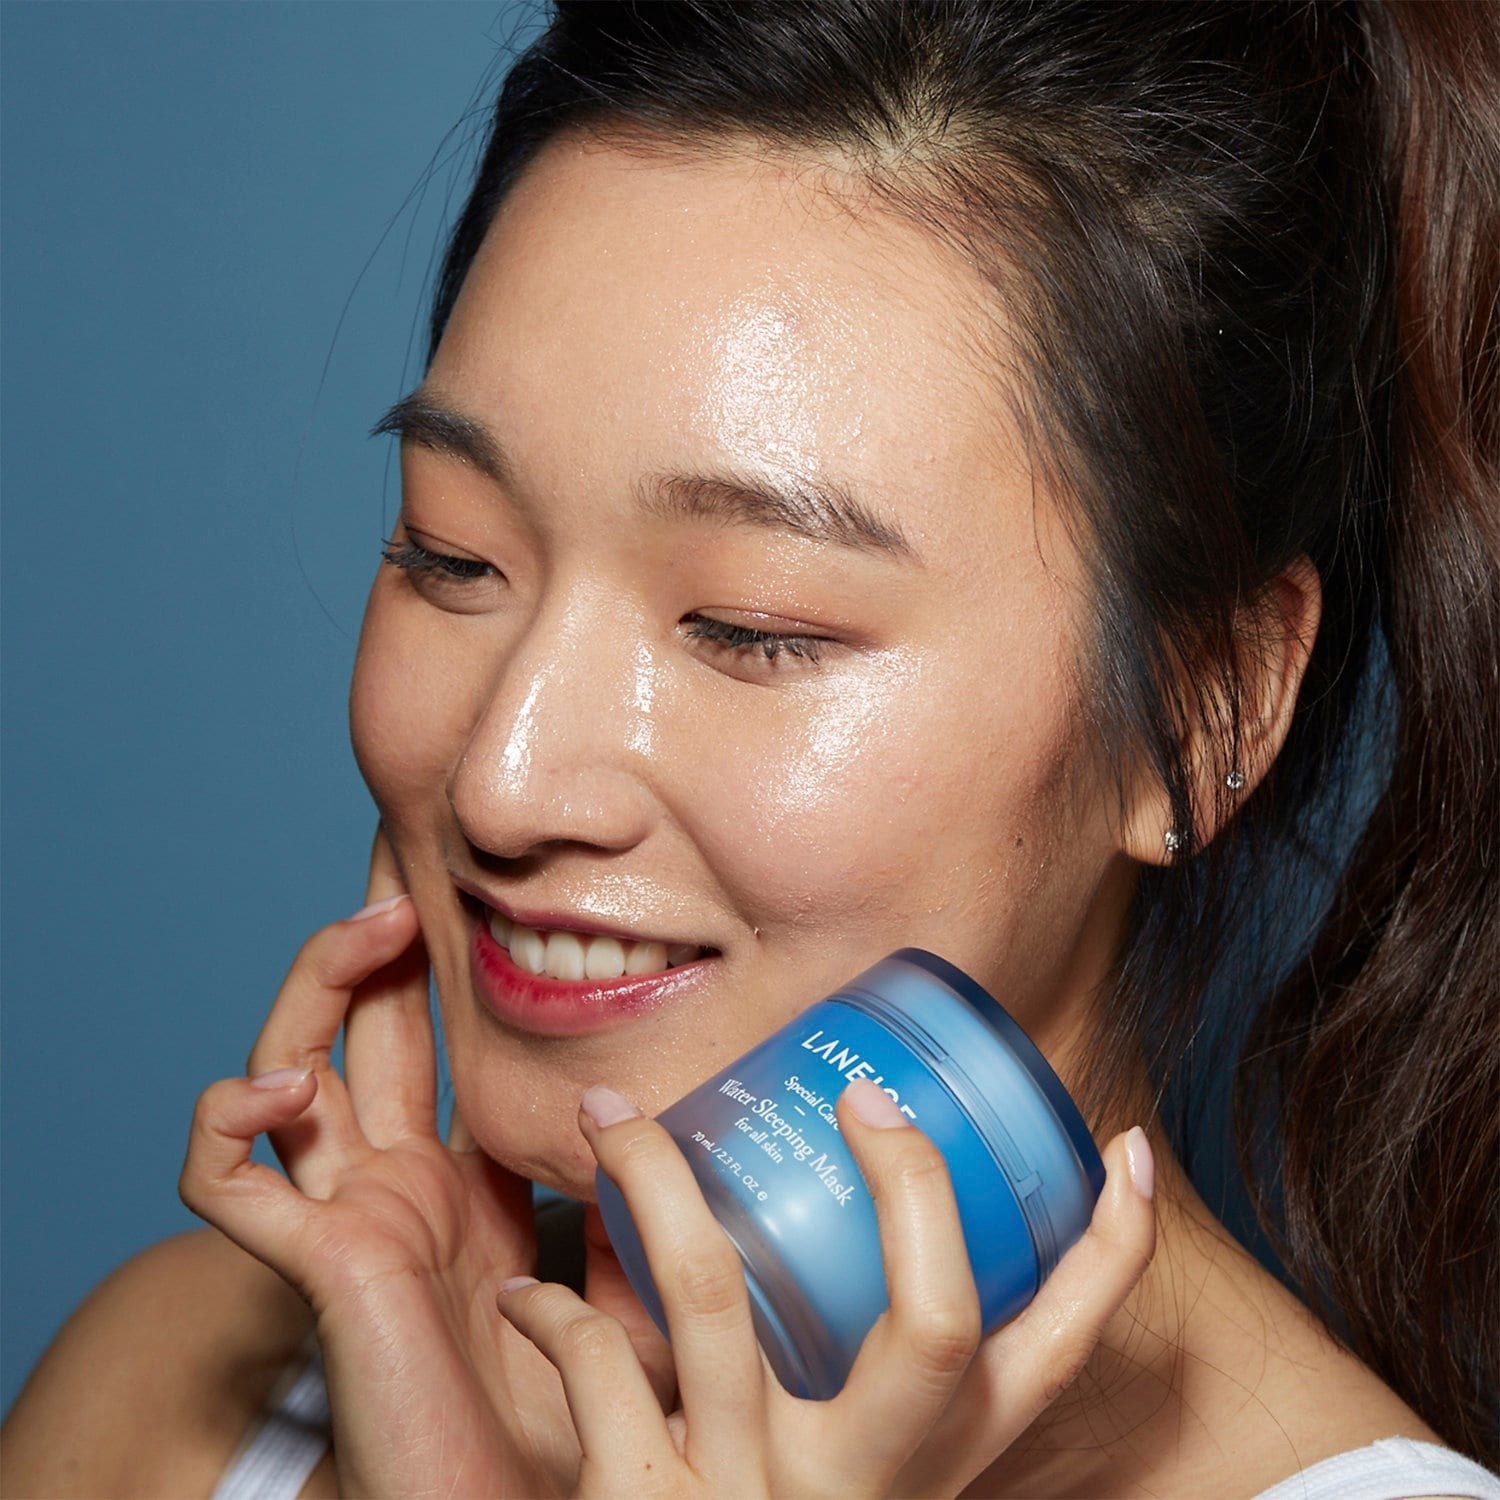 A model with glowing skin holding the jar of mask